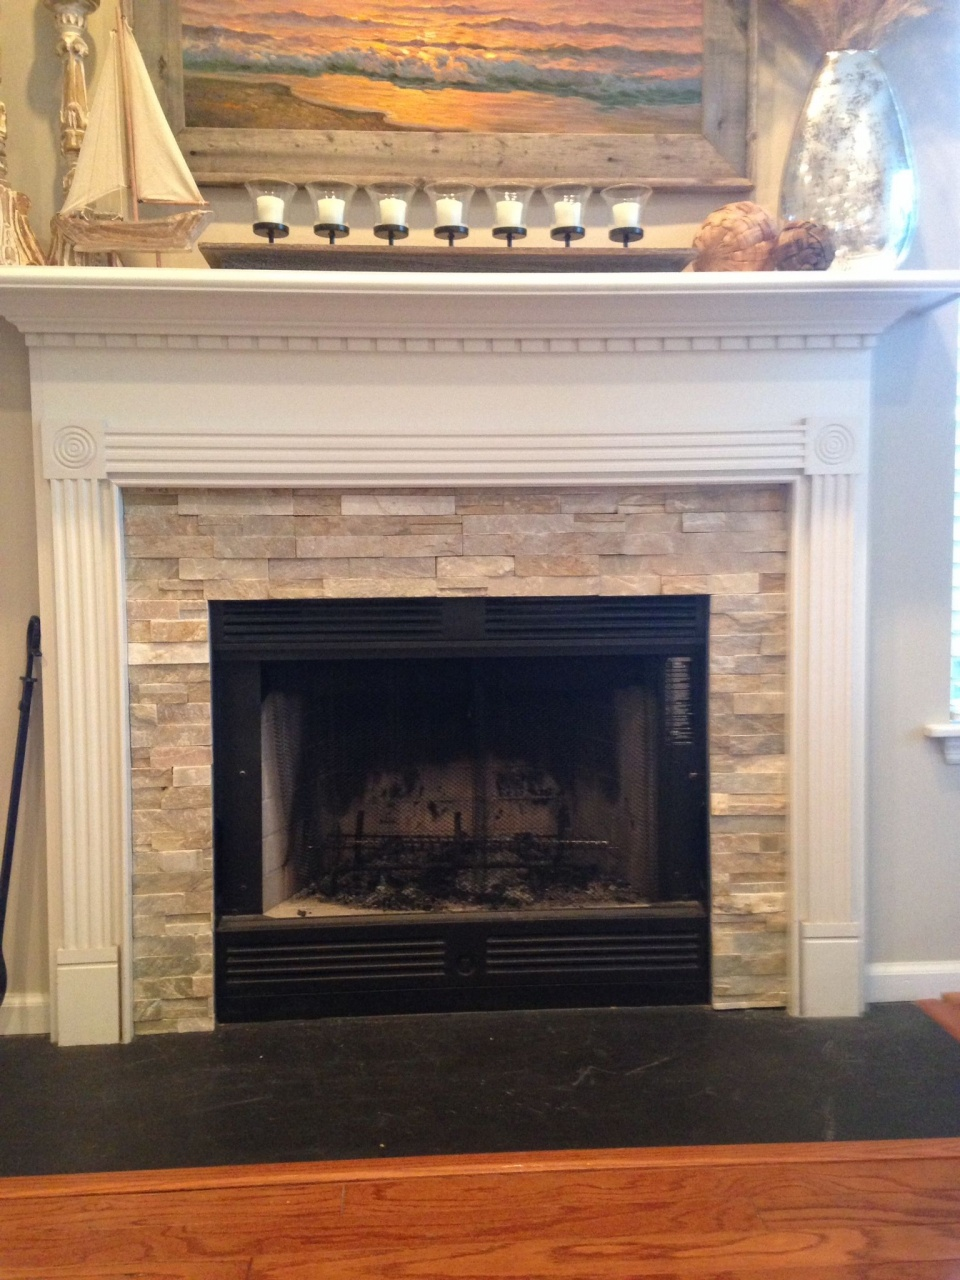 where to fireplace hearth stone fireplace idea mantel wainscoting design craftsman from where to fireplace hearth stone